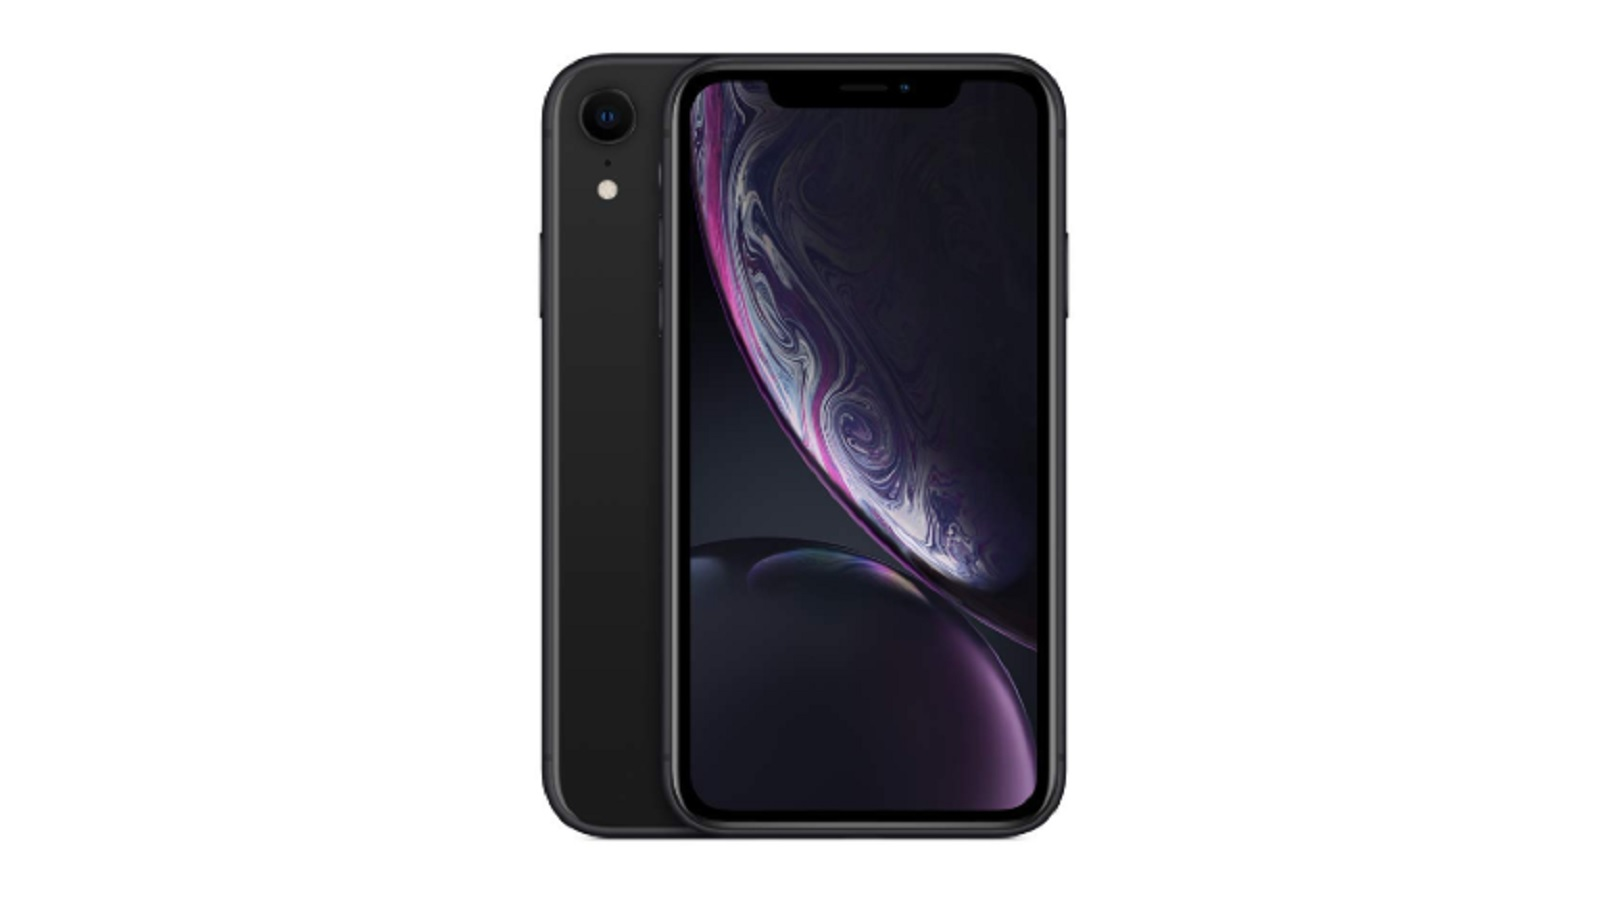 bf26cad9893 🔥 Amazon Prime Day : Apple iPhone XR Black 64 go à prix imbattable